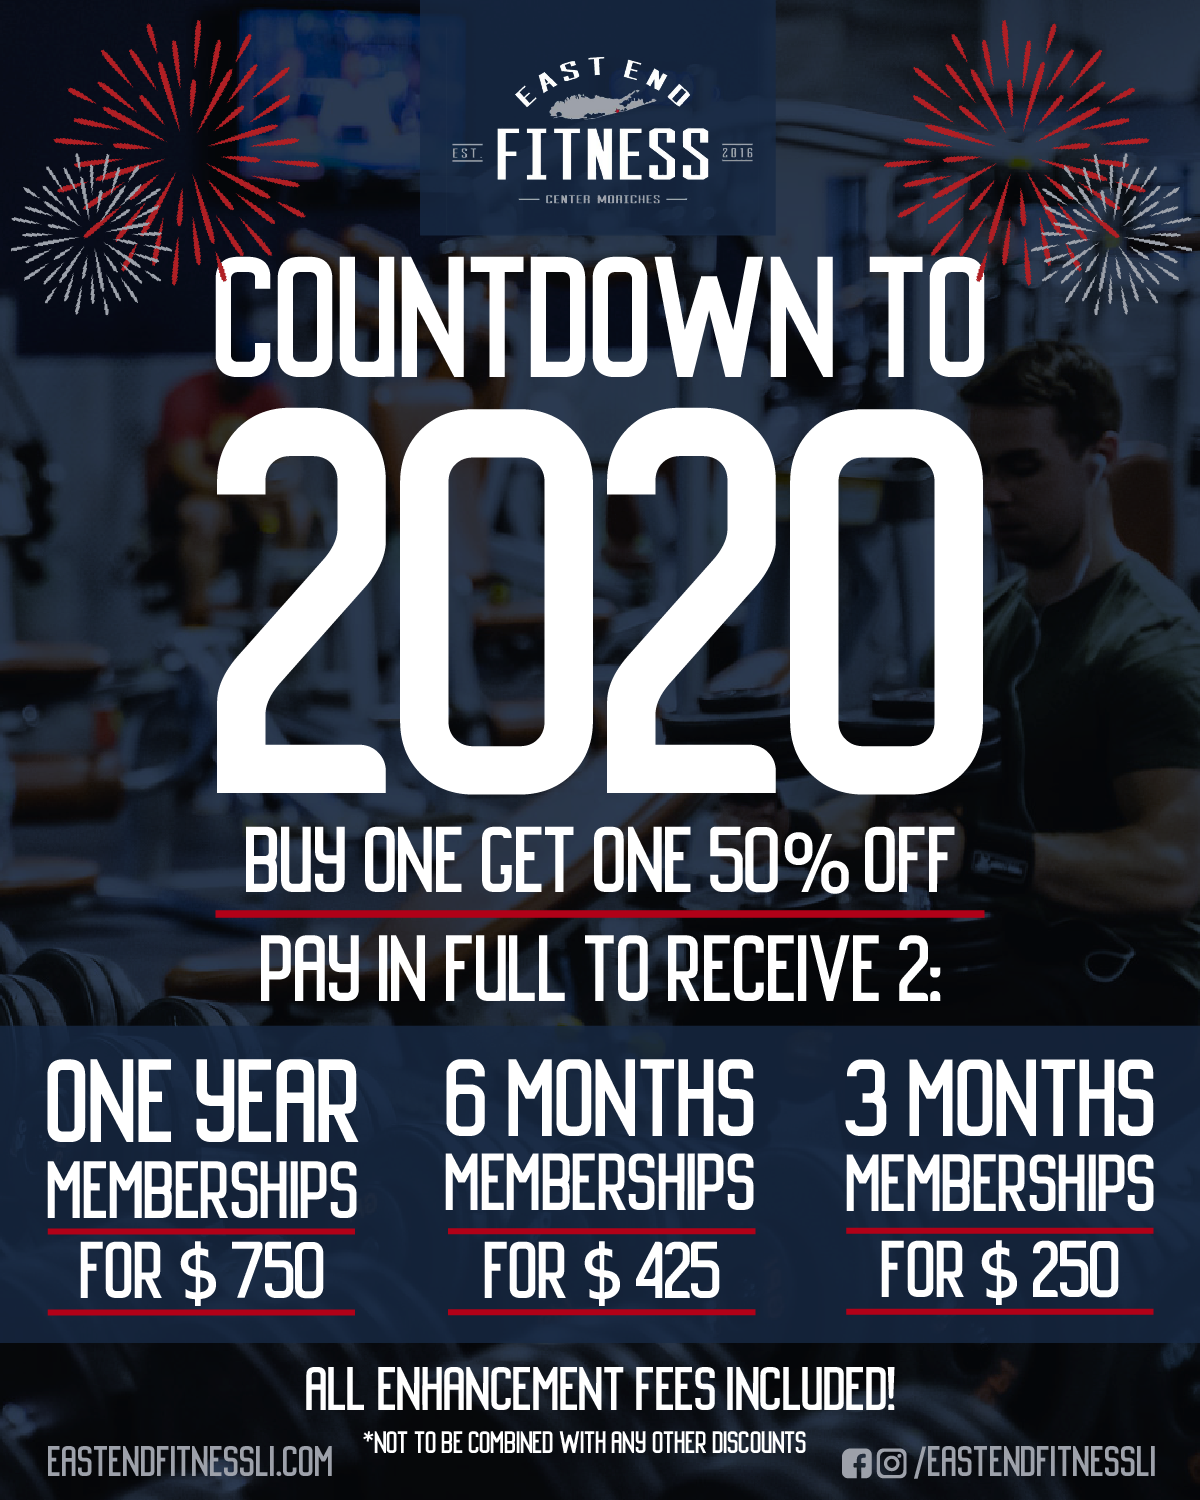 Flyer for Countdown to 2020. Buy one get one 50% off. Pay in full to receive 2: one year memberships for $750, 6 months memberships for $425, 3 months memberships for $250. All enhancement fees included.